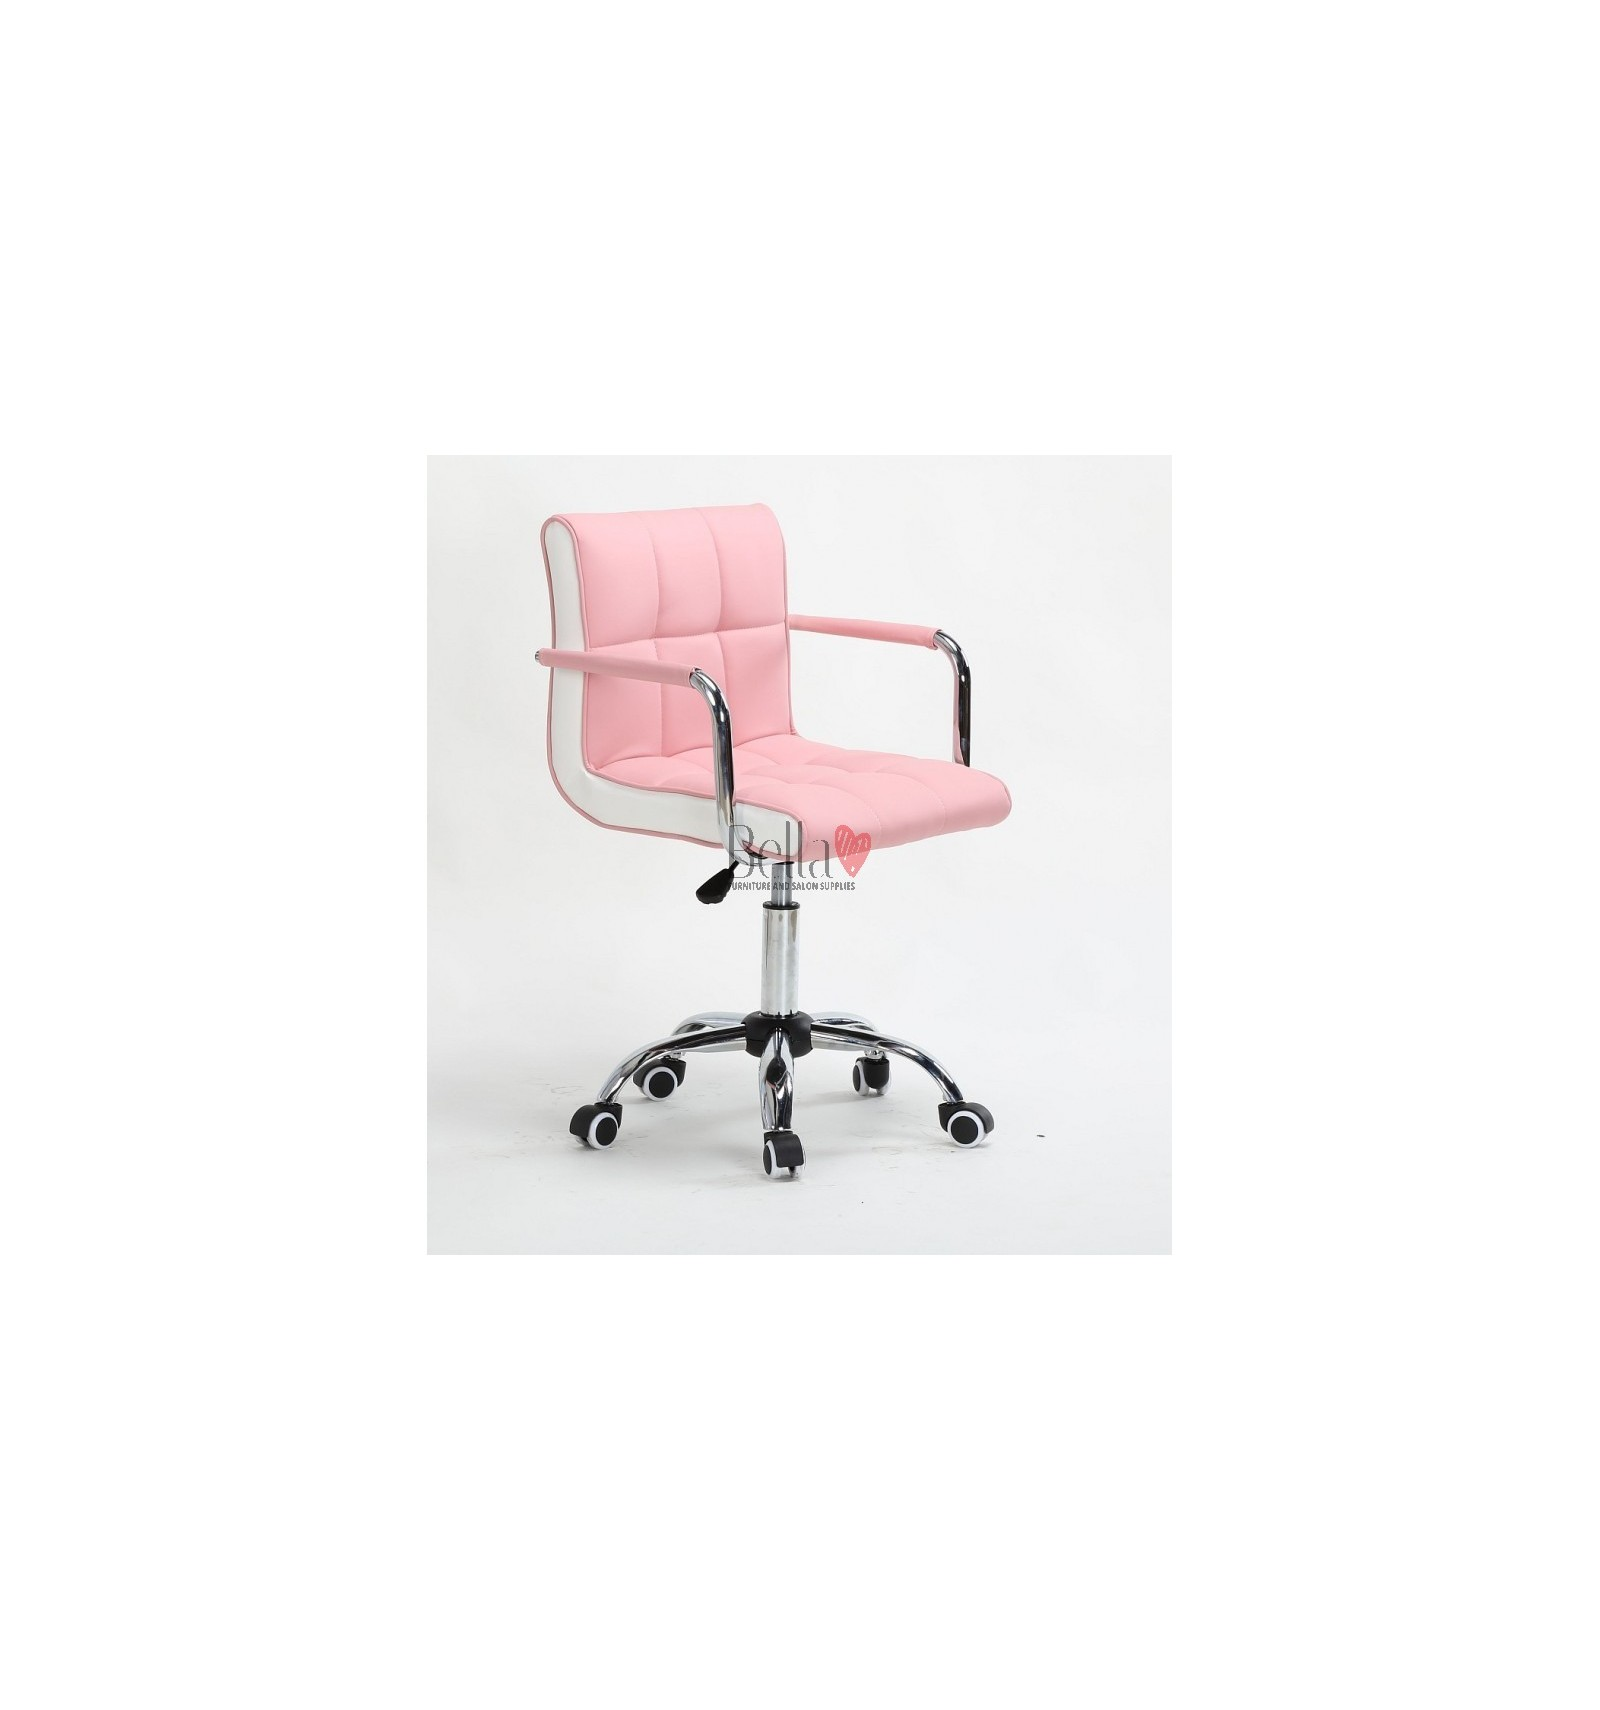 Pink Nail Salon Chairs For Sale Stylish Chairs For Nail Salons Dublin